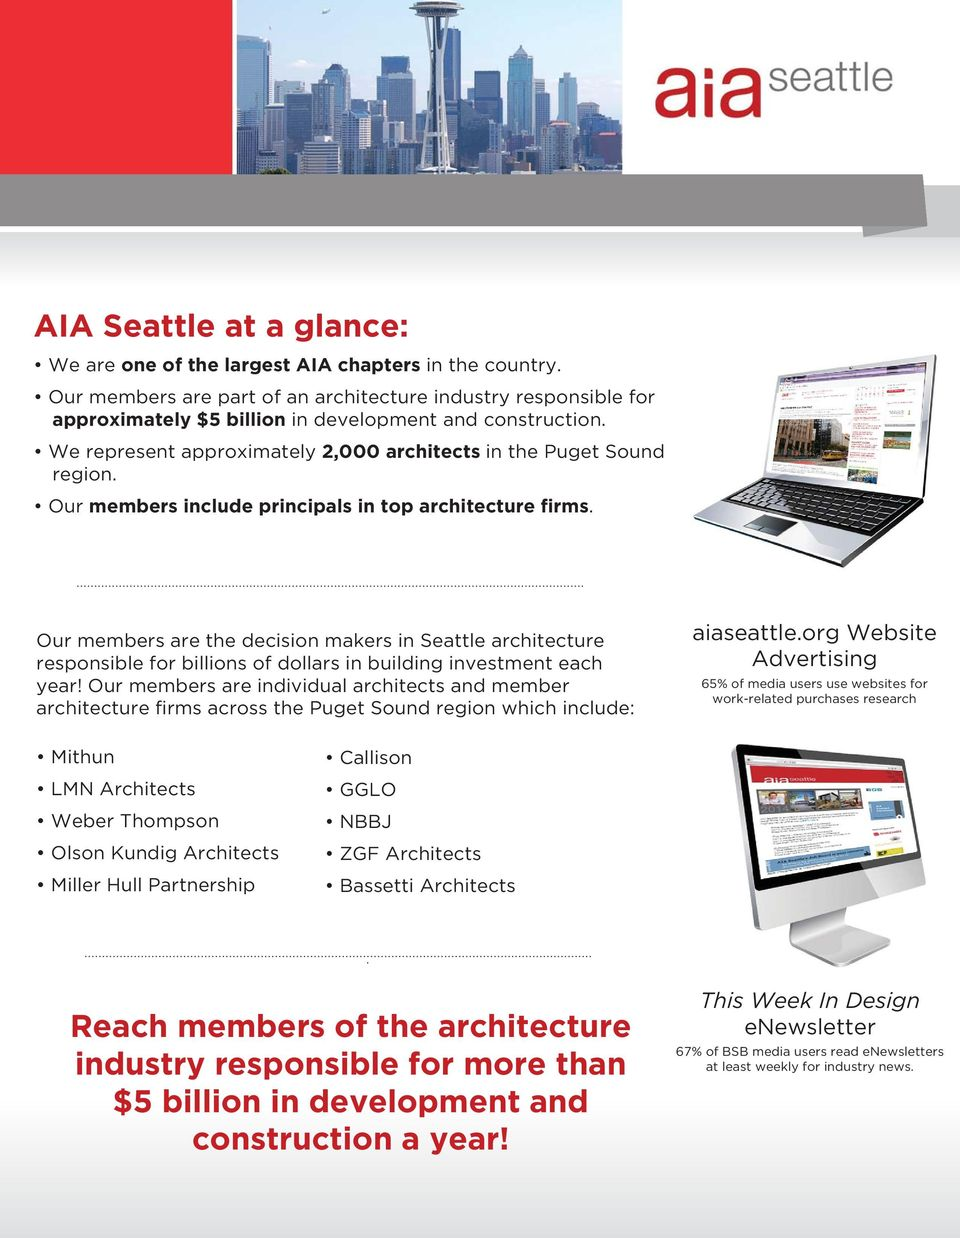 Our members are the decision makers in Seattle architecture responsible for billions of dollars in building investment each year!